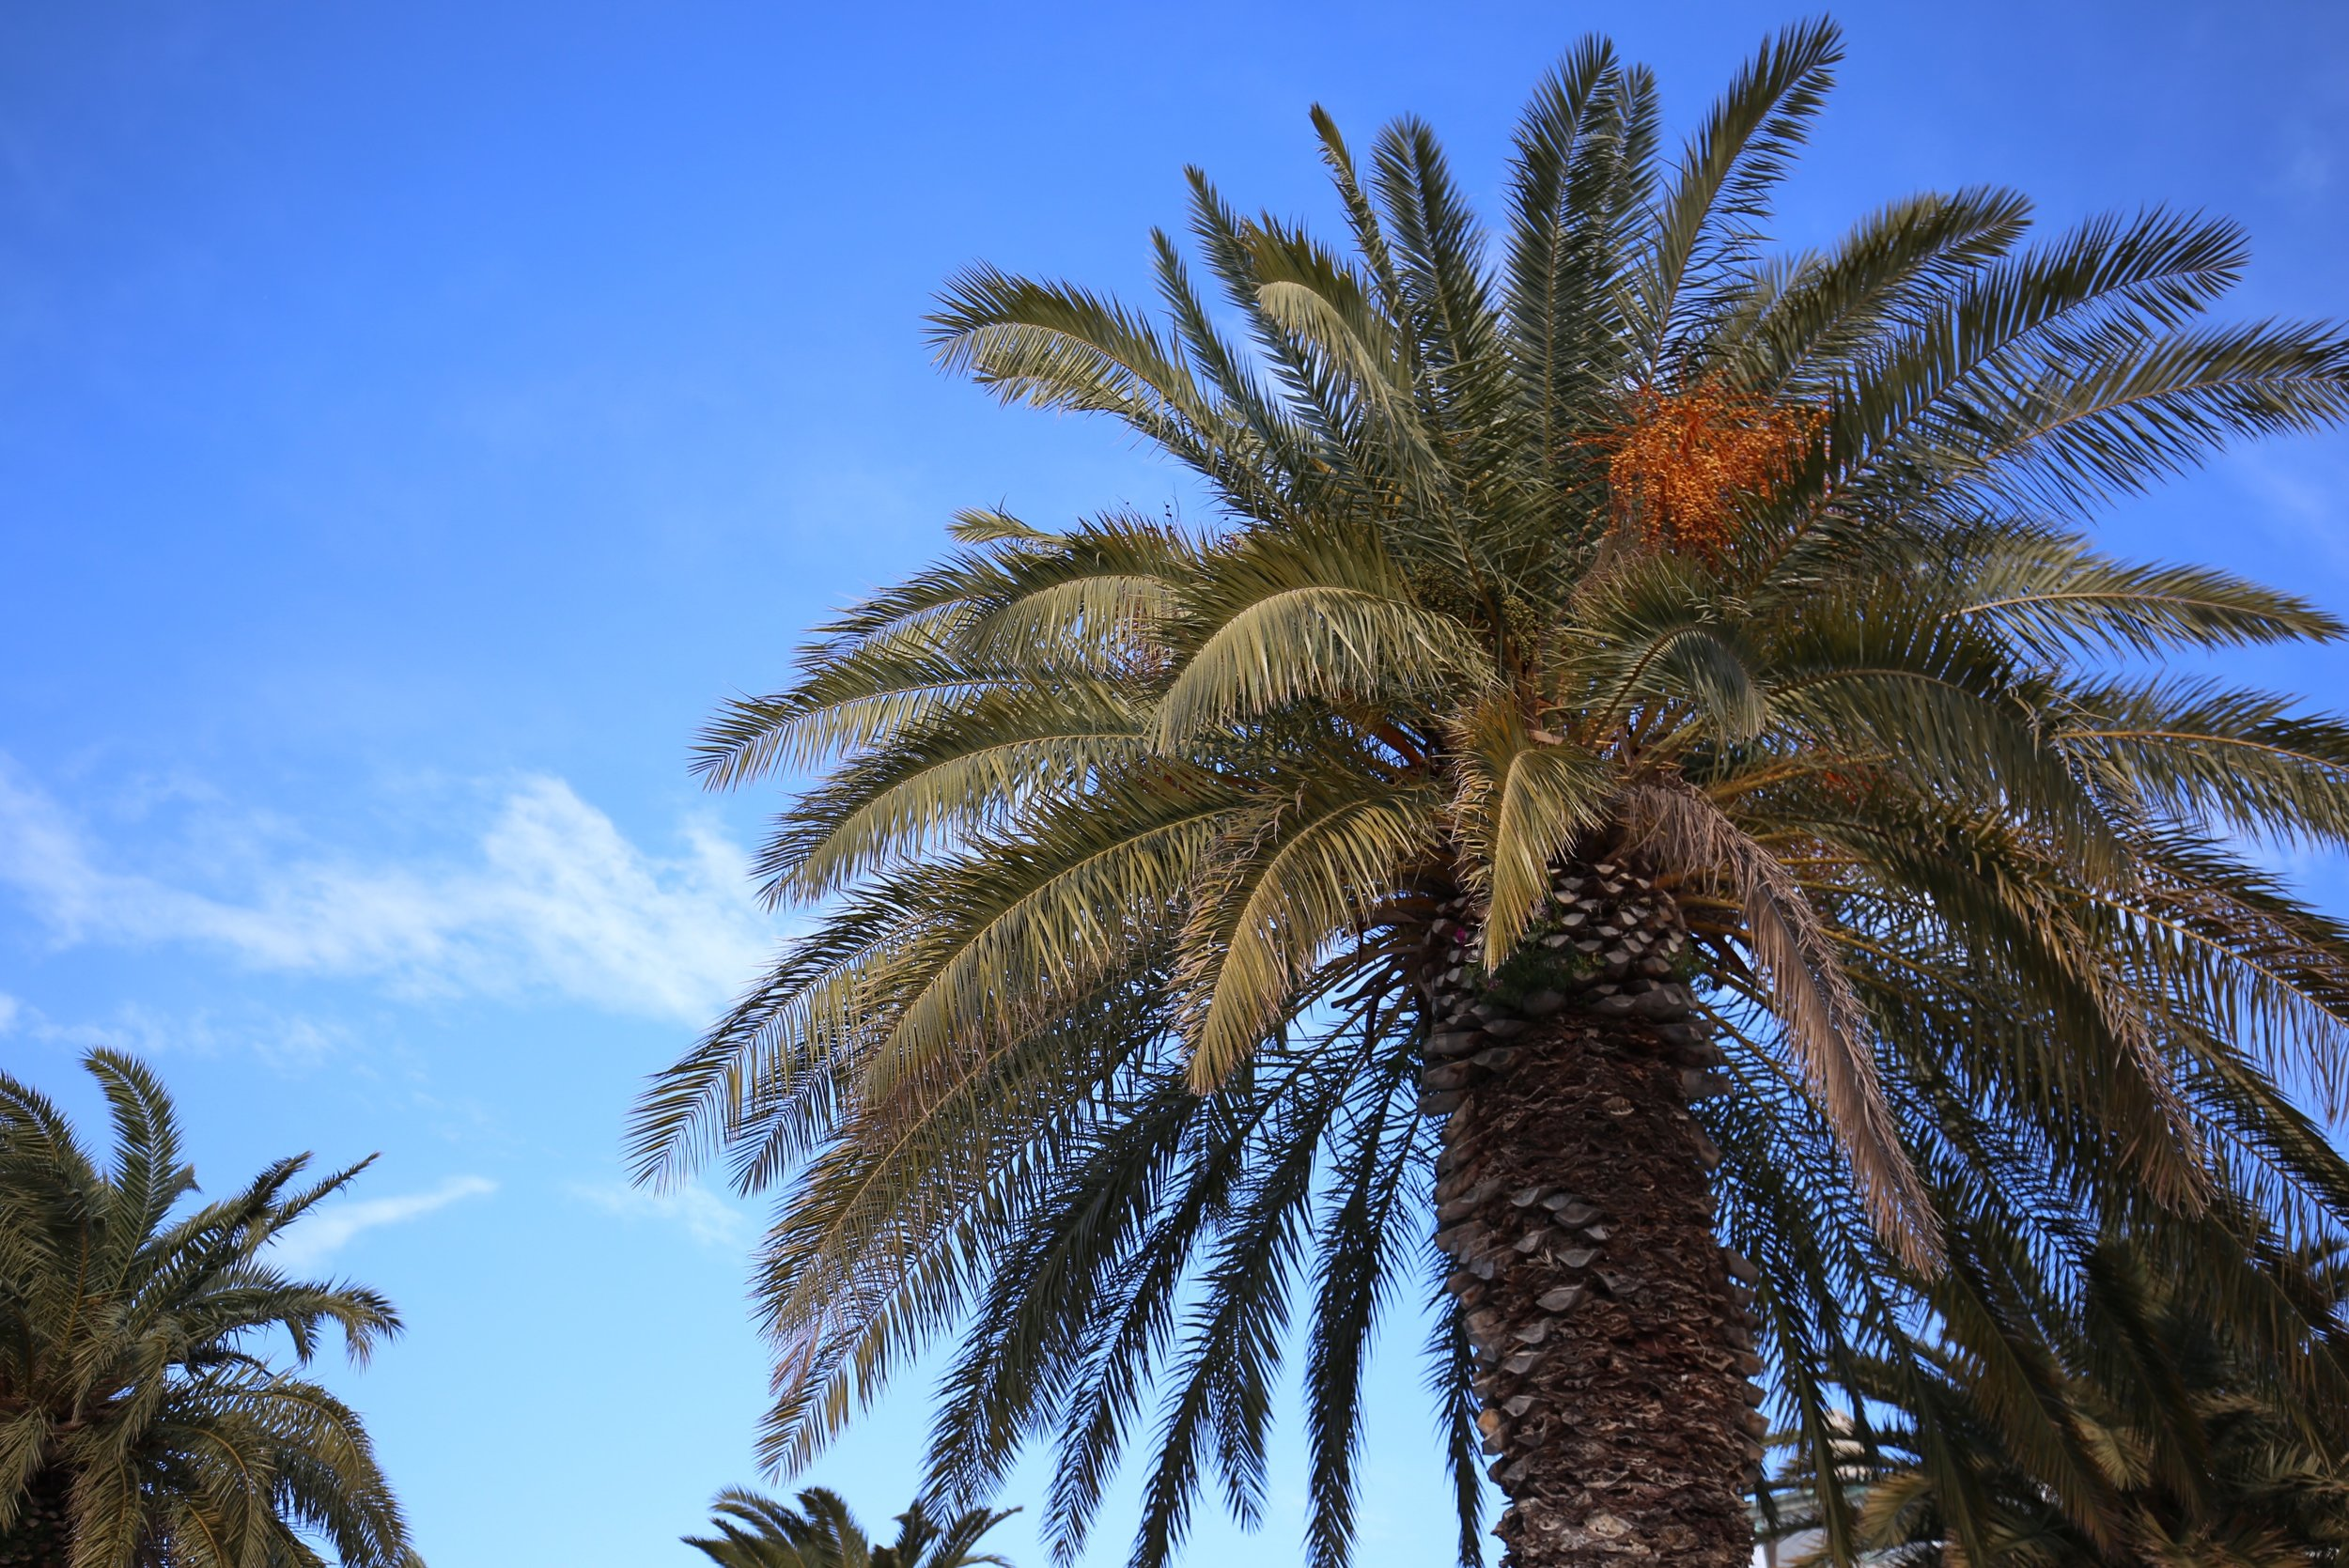 Palm trees and blue skies.